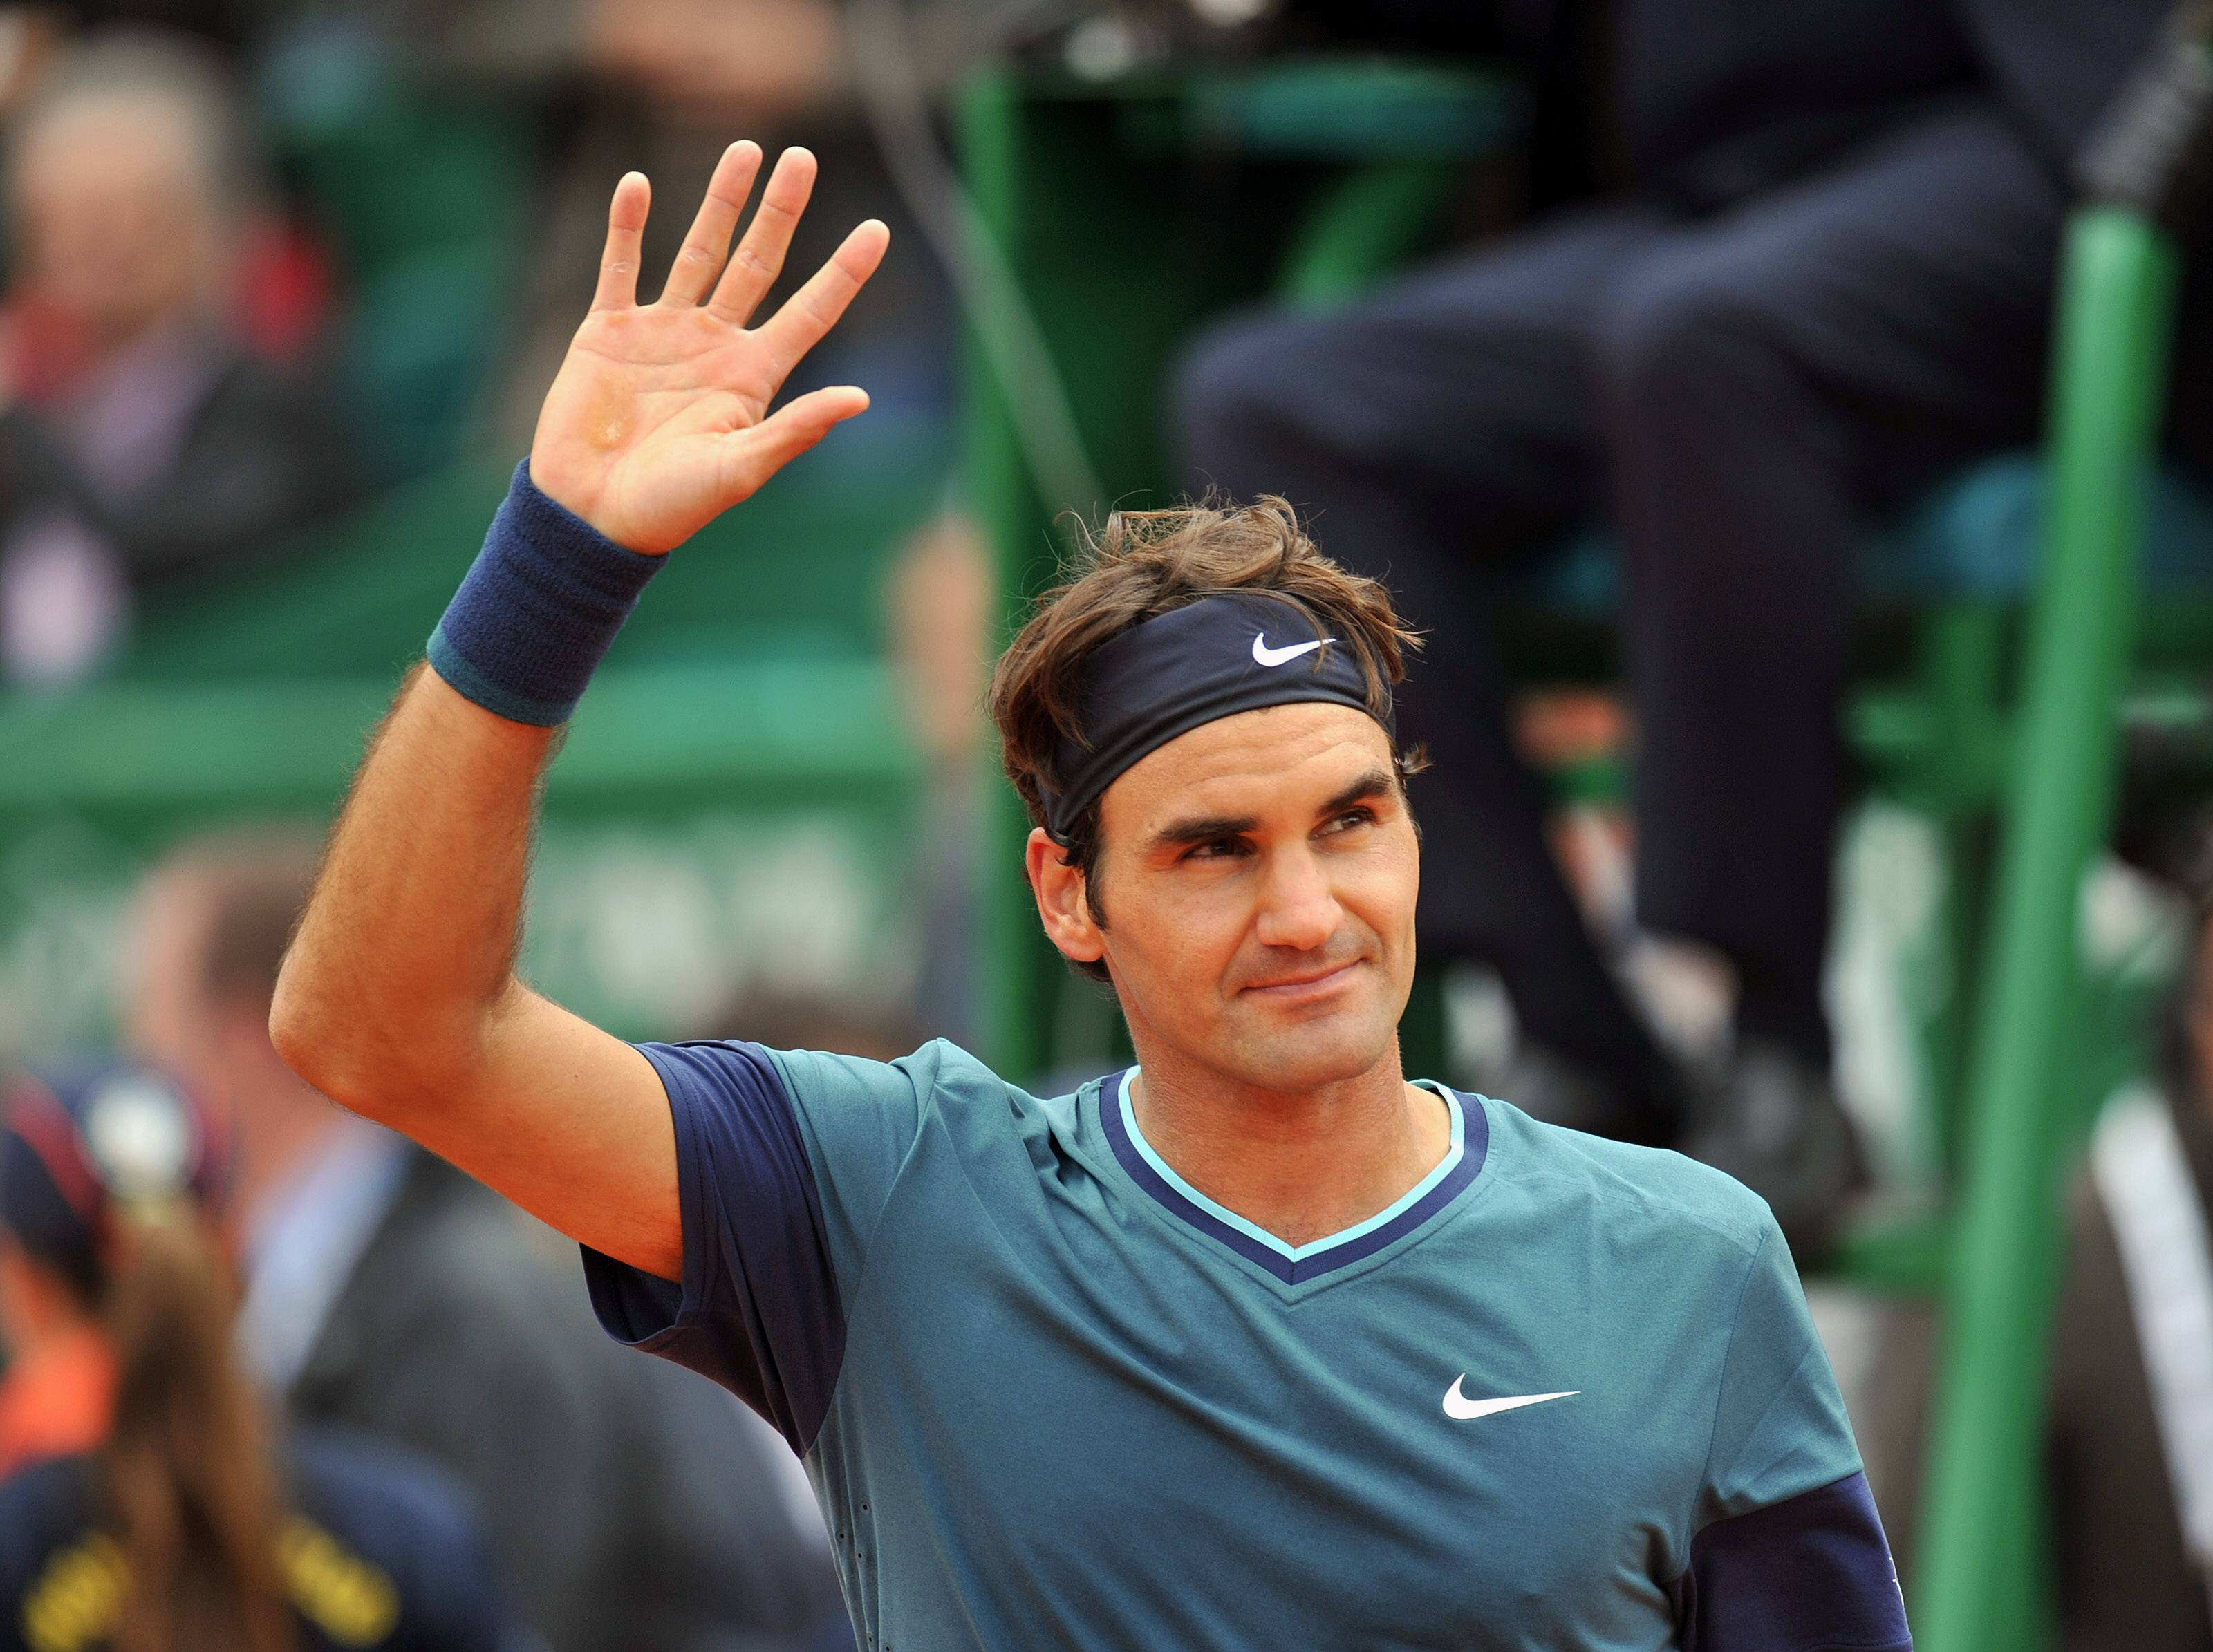 Roger Federer at the Monte Carlo Rolex Masters, April 16, 2014.